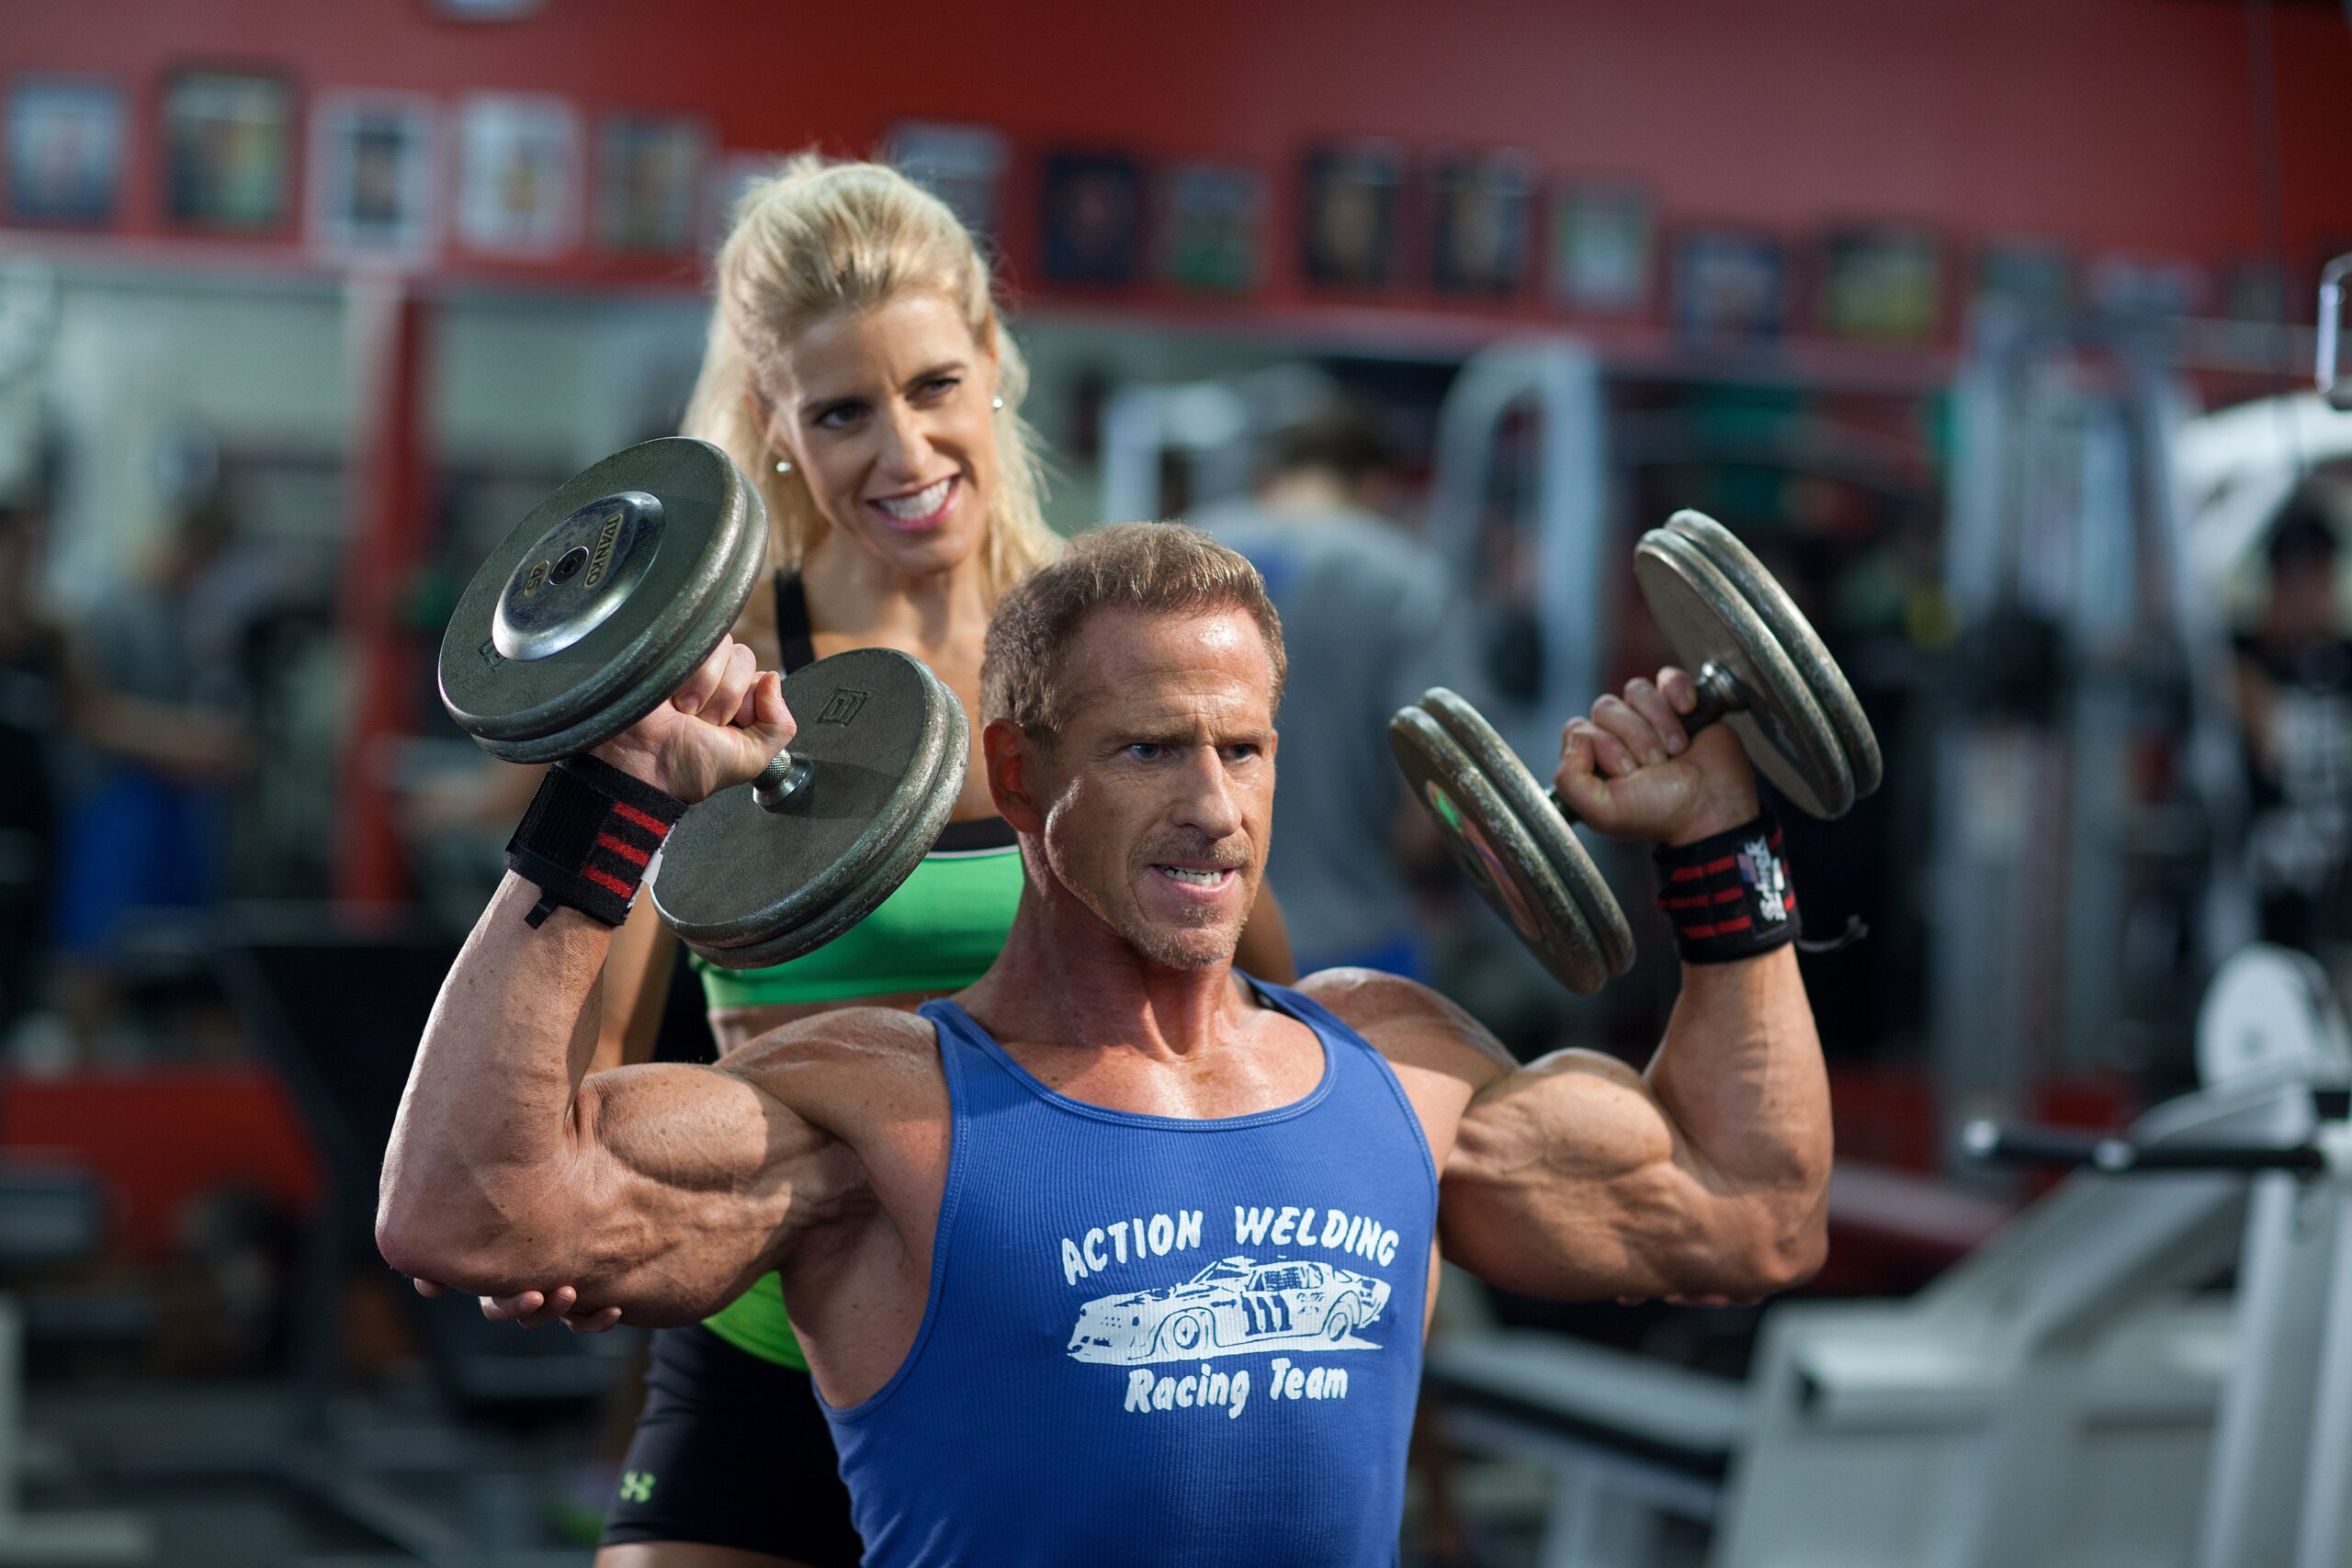 Muscle: Professional bodybuilder Tom Terwilliger and his wife, Dawn Terwilliger